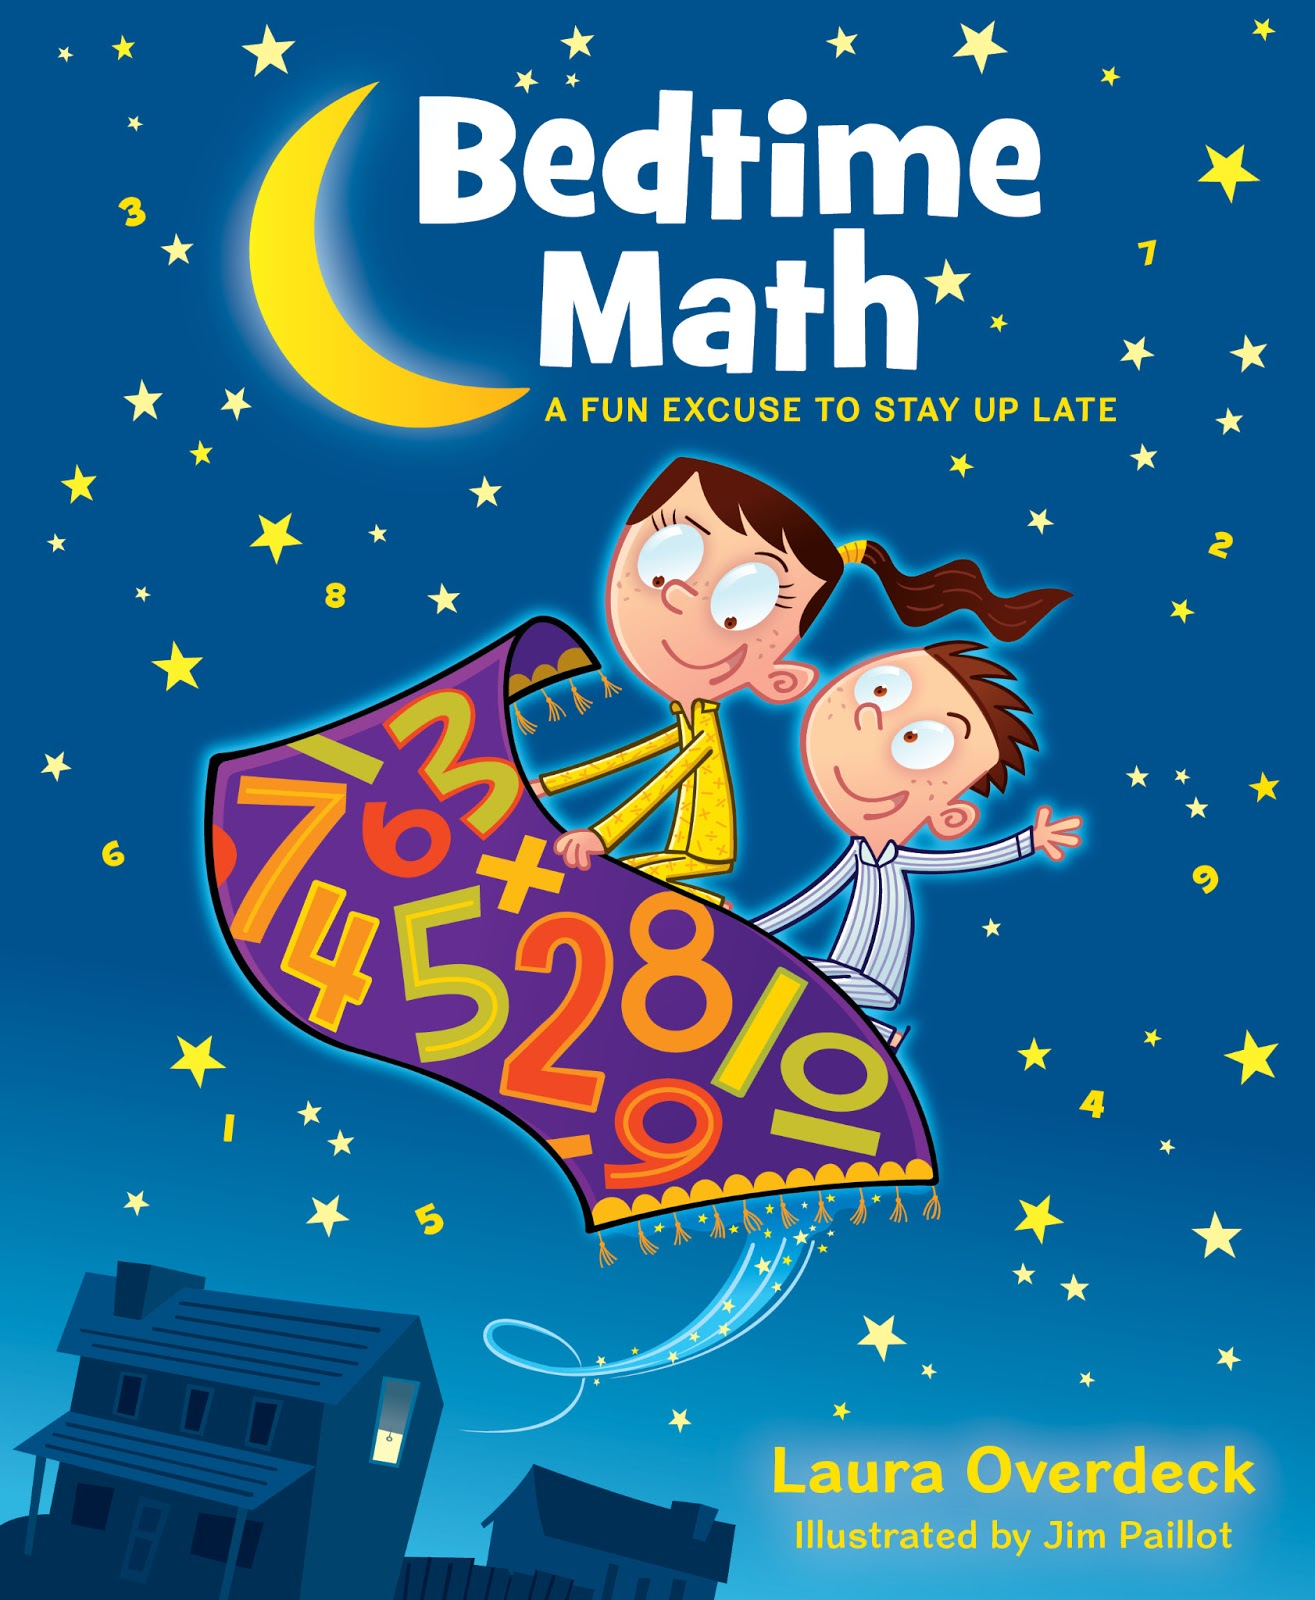 Children Book Cover Page ~ Susan heim on parenting bedtime math book tour an